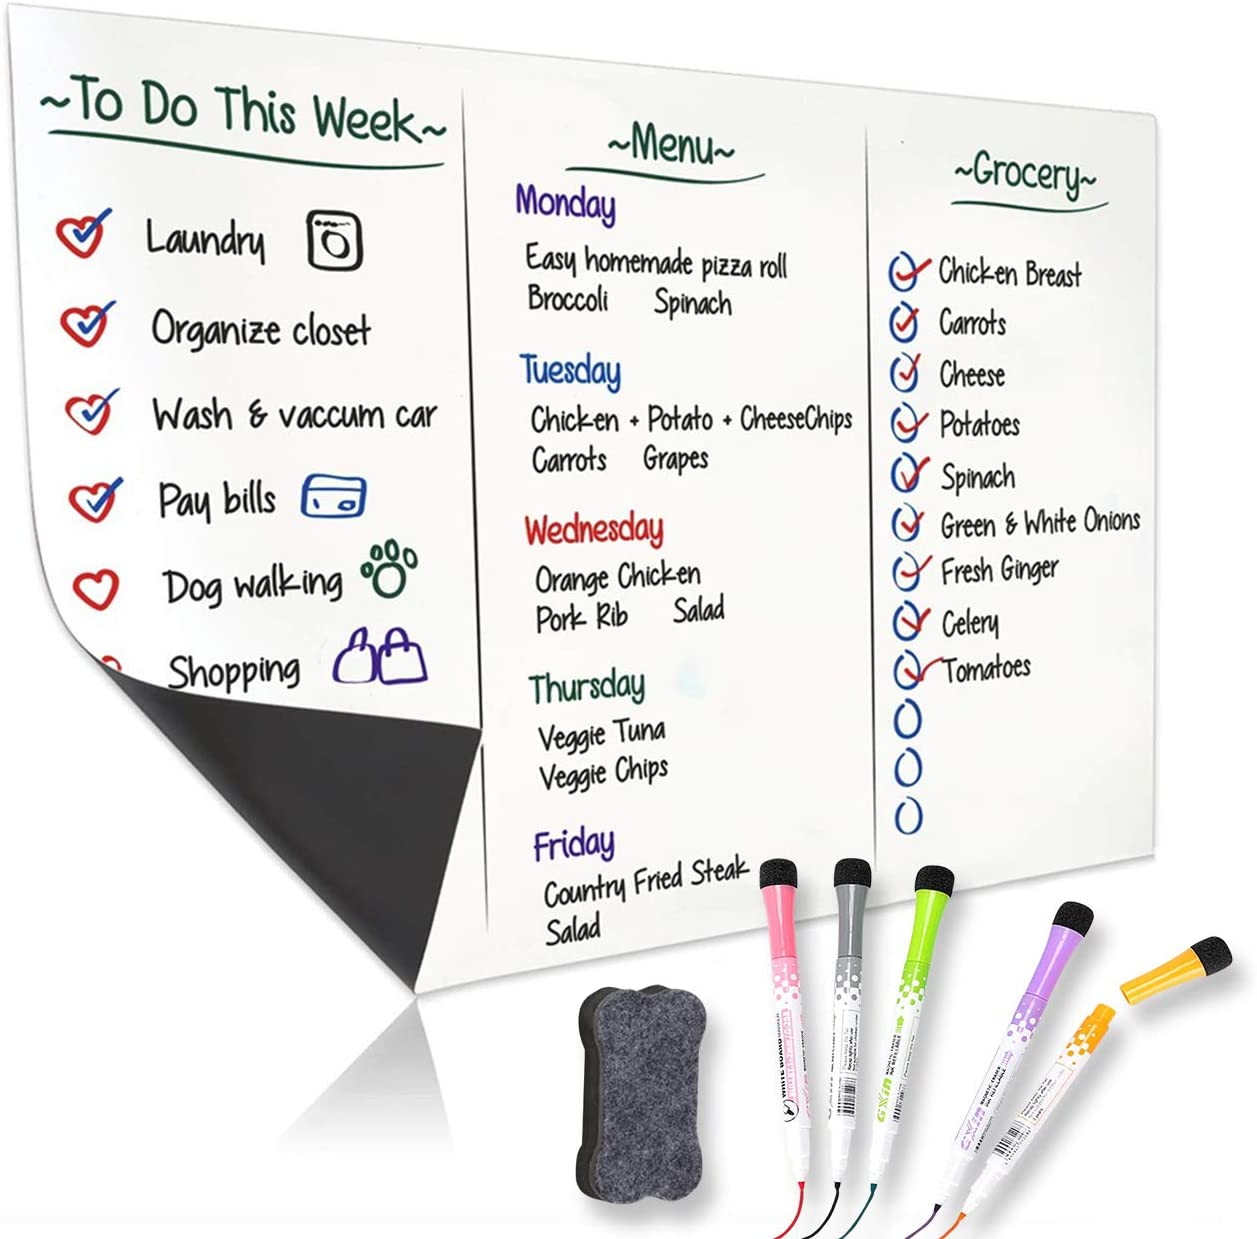 YBINYNA Magnetic Dry Erase Whiteboard 17x Clearance SALE Limited Trust time for Sheet Refrigerator